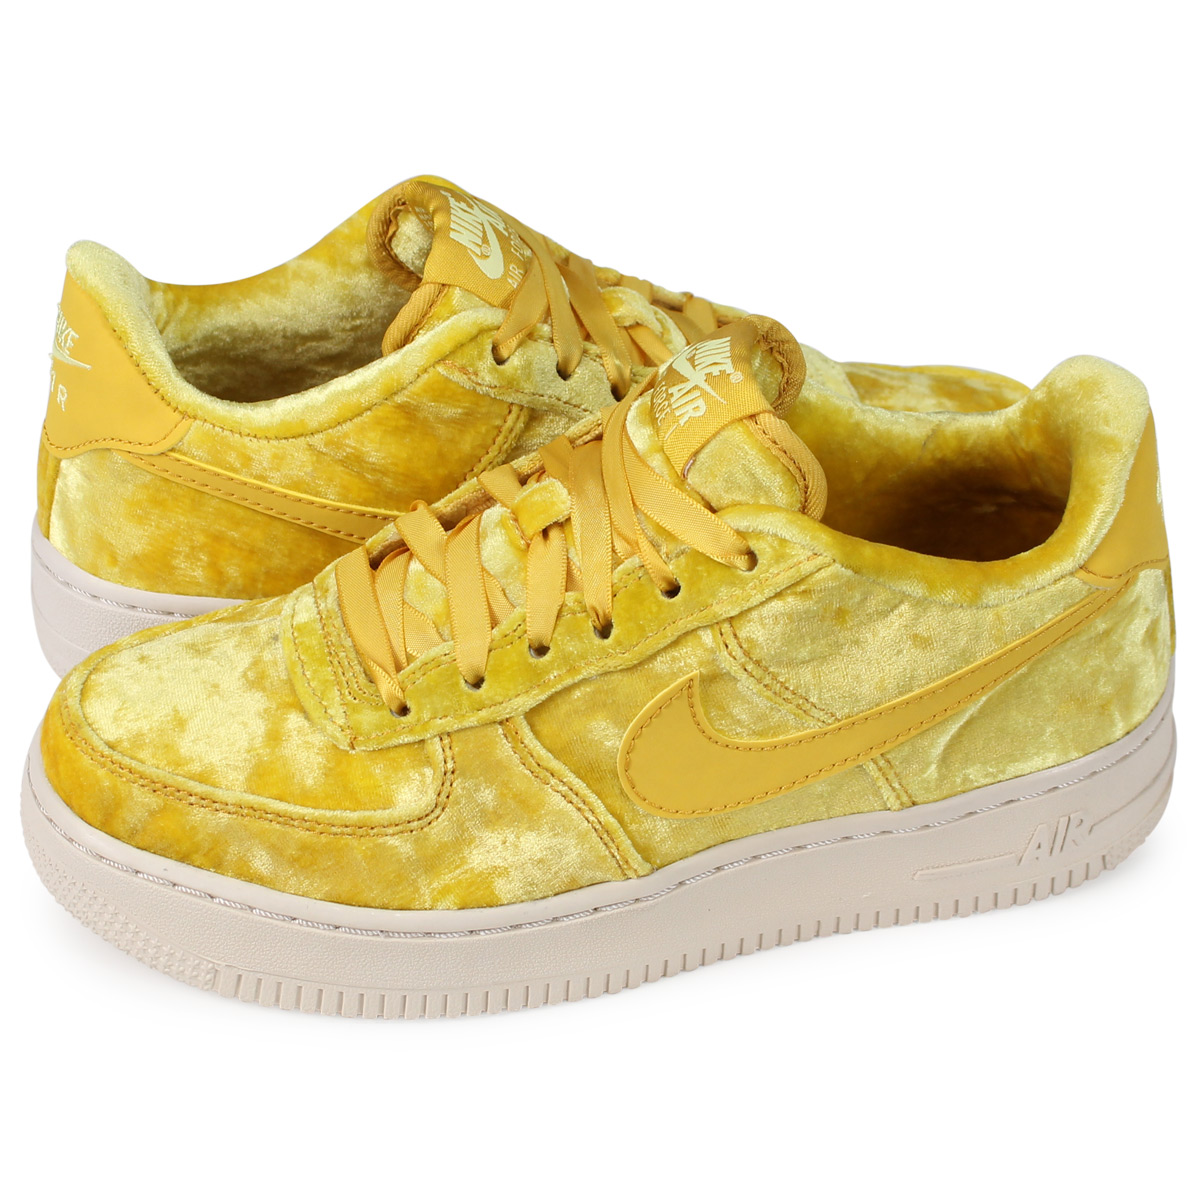 1 Gold Force Sneakers Lady's Nike Lv8 345 Air Gs 849 7001811 QrxBodCeW